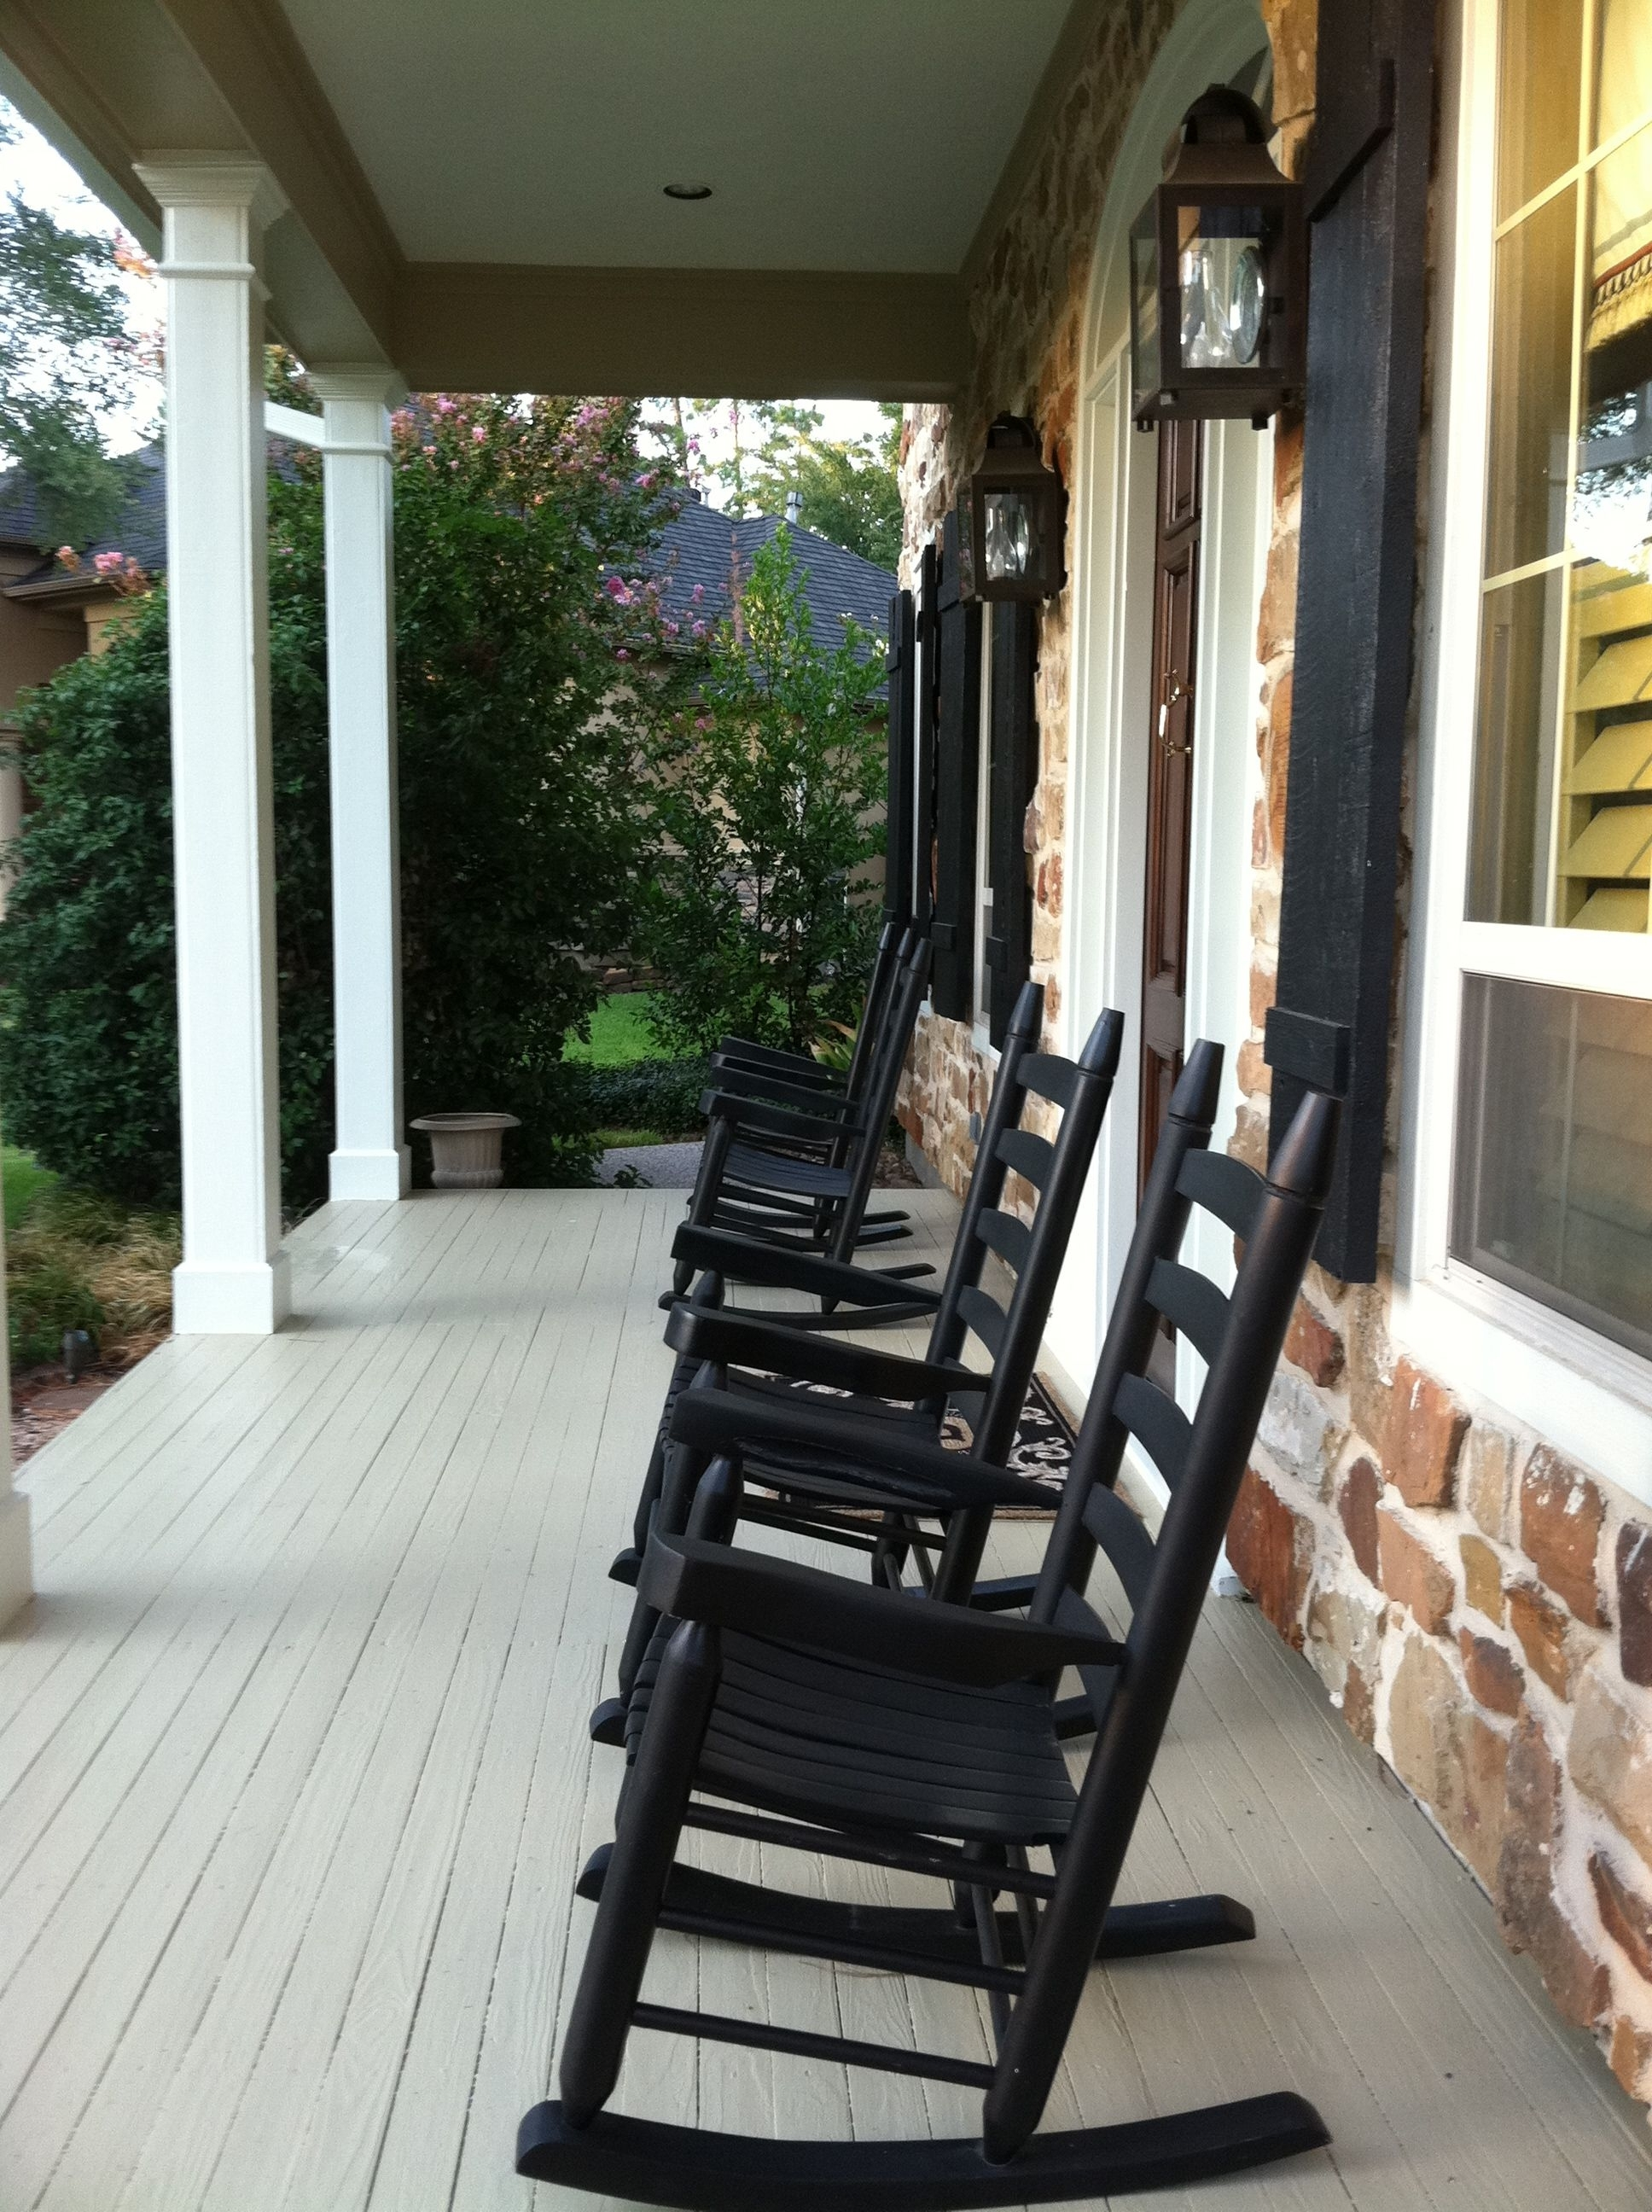 Rocking Chairs For Front Porch Inside Most Popular Outdoor Rocking Chairs: Outdoor Rocking Chairs Black Porch (View 12 of 20)